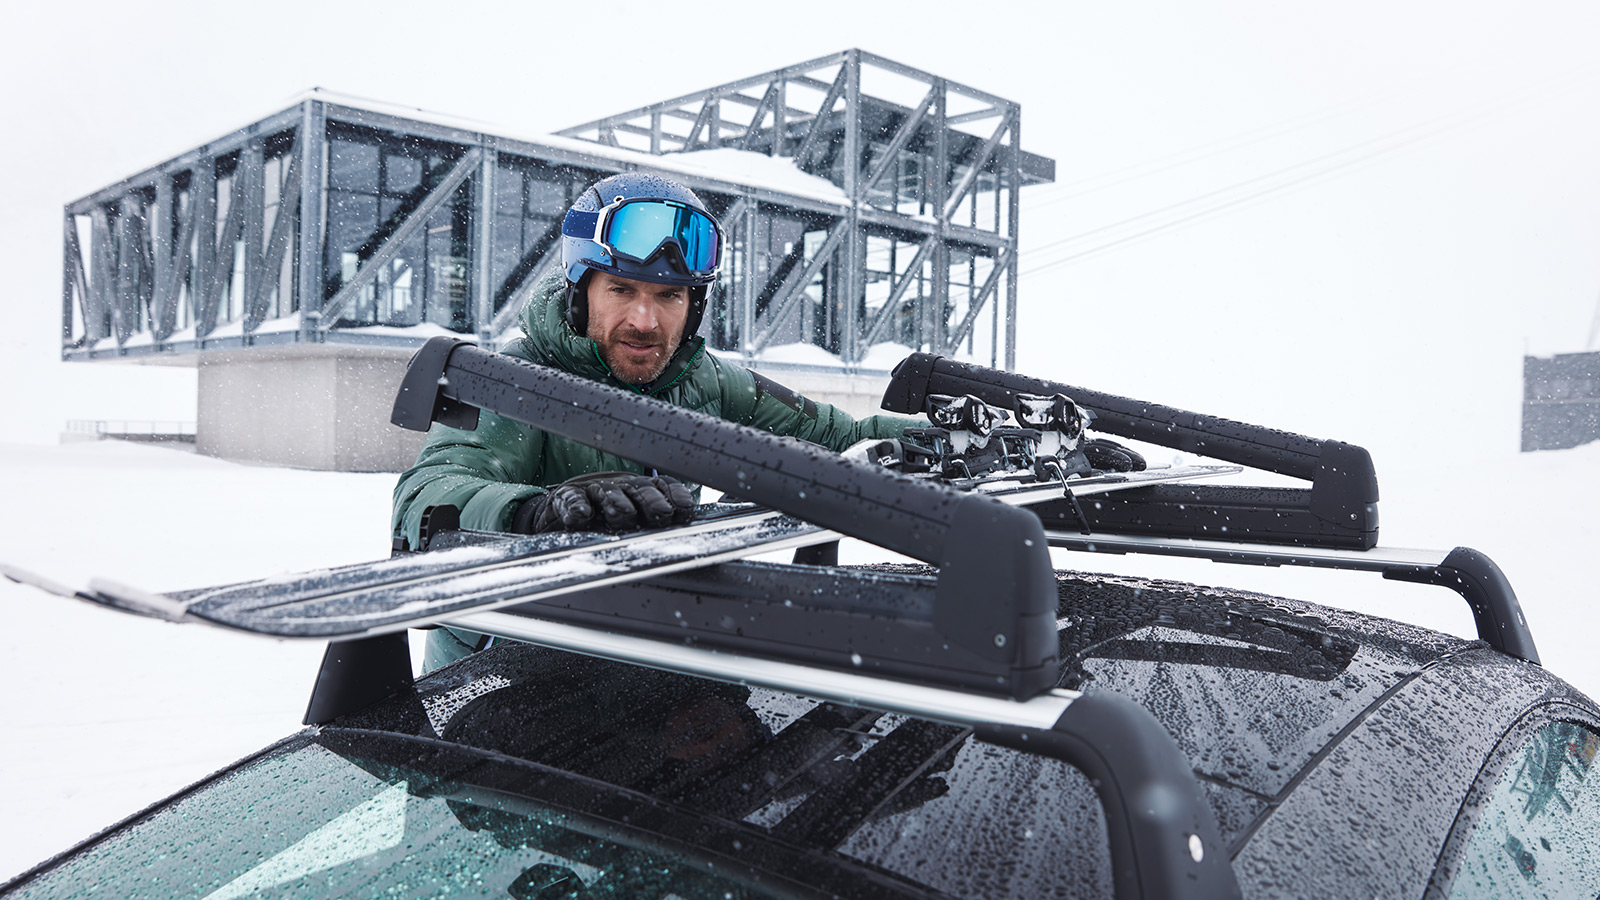 Porsche - Winter accessories